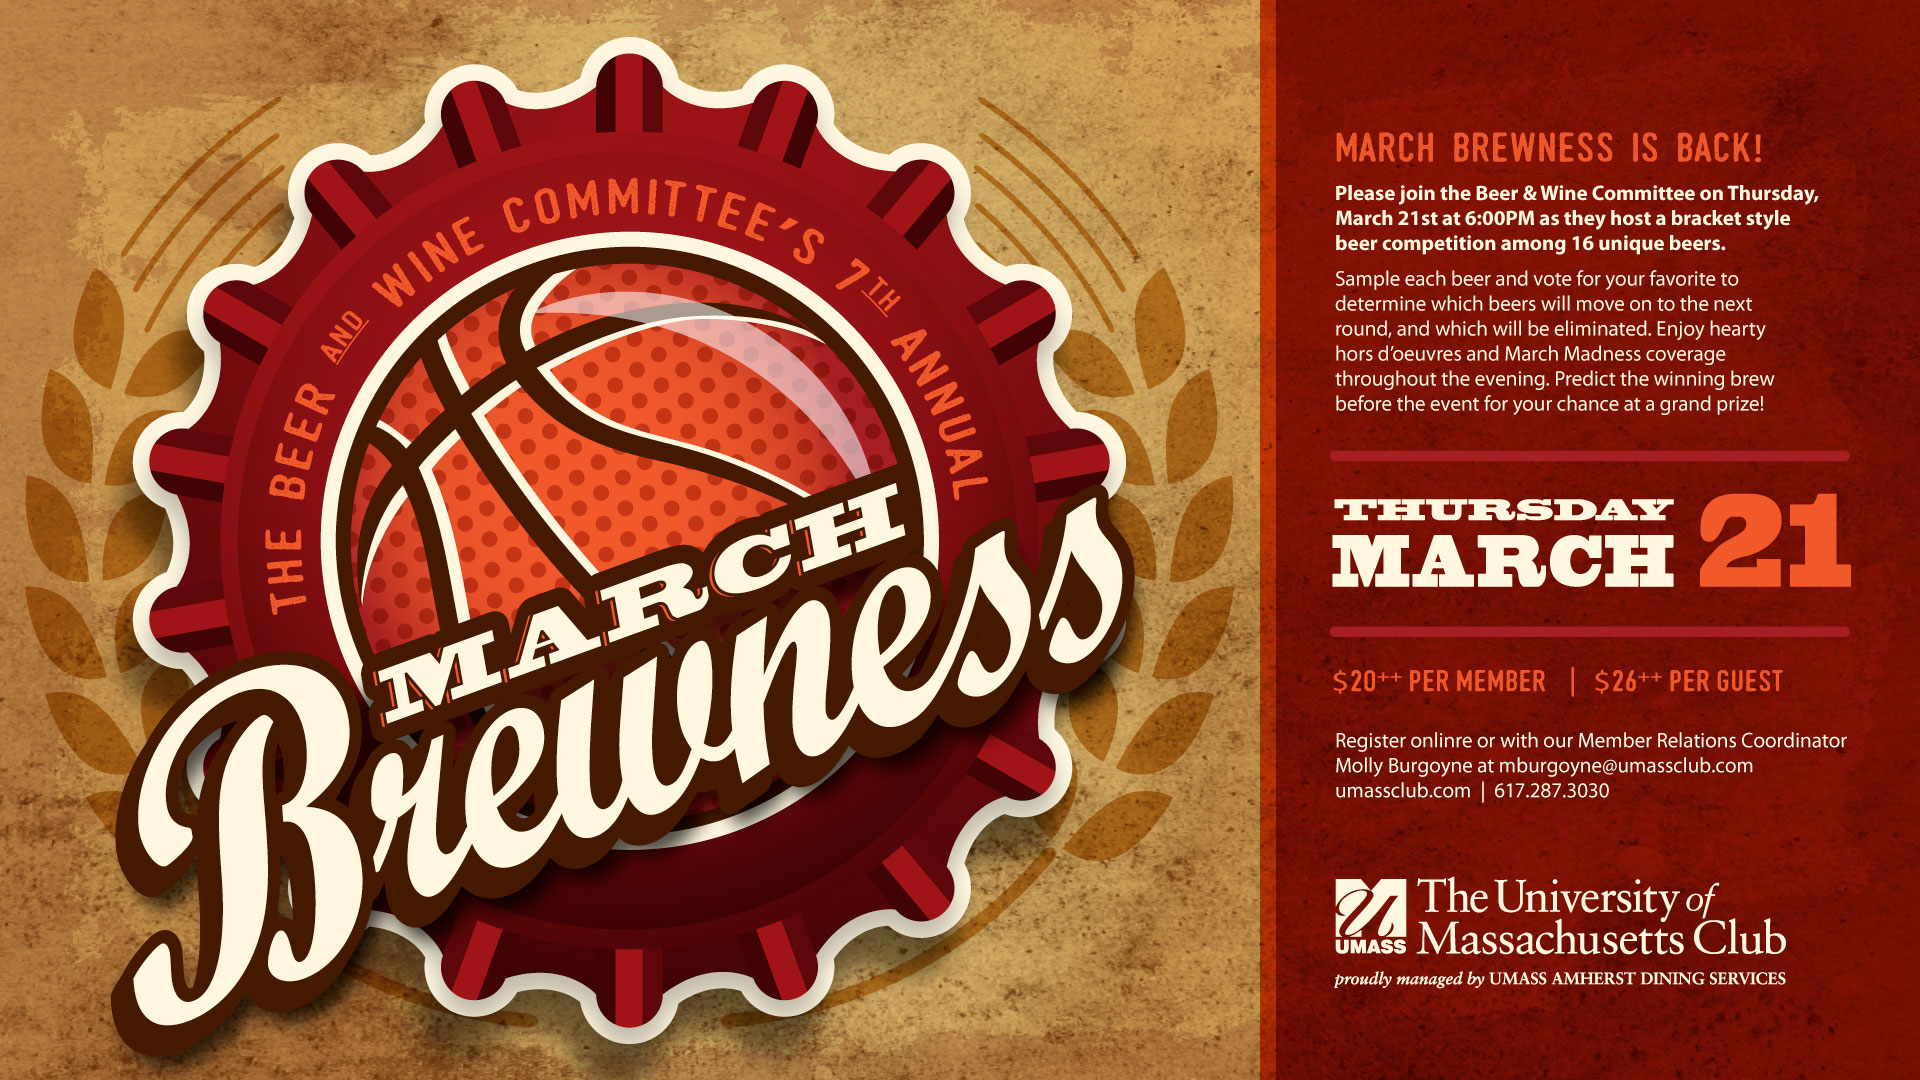 March Brewness